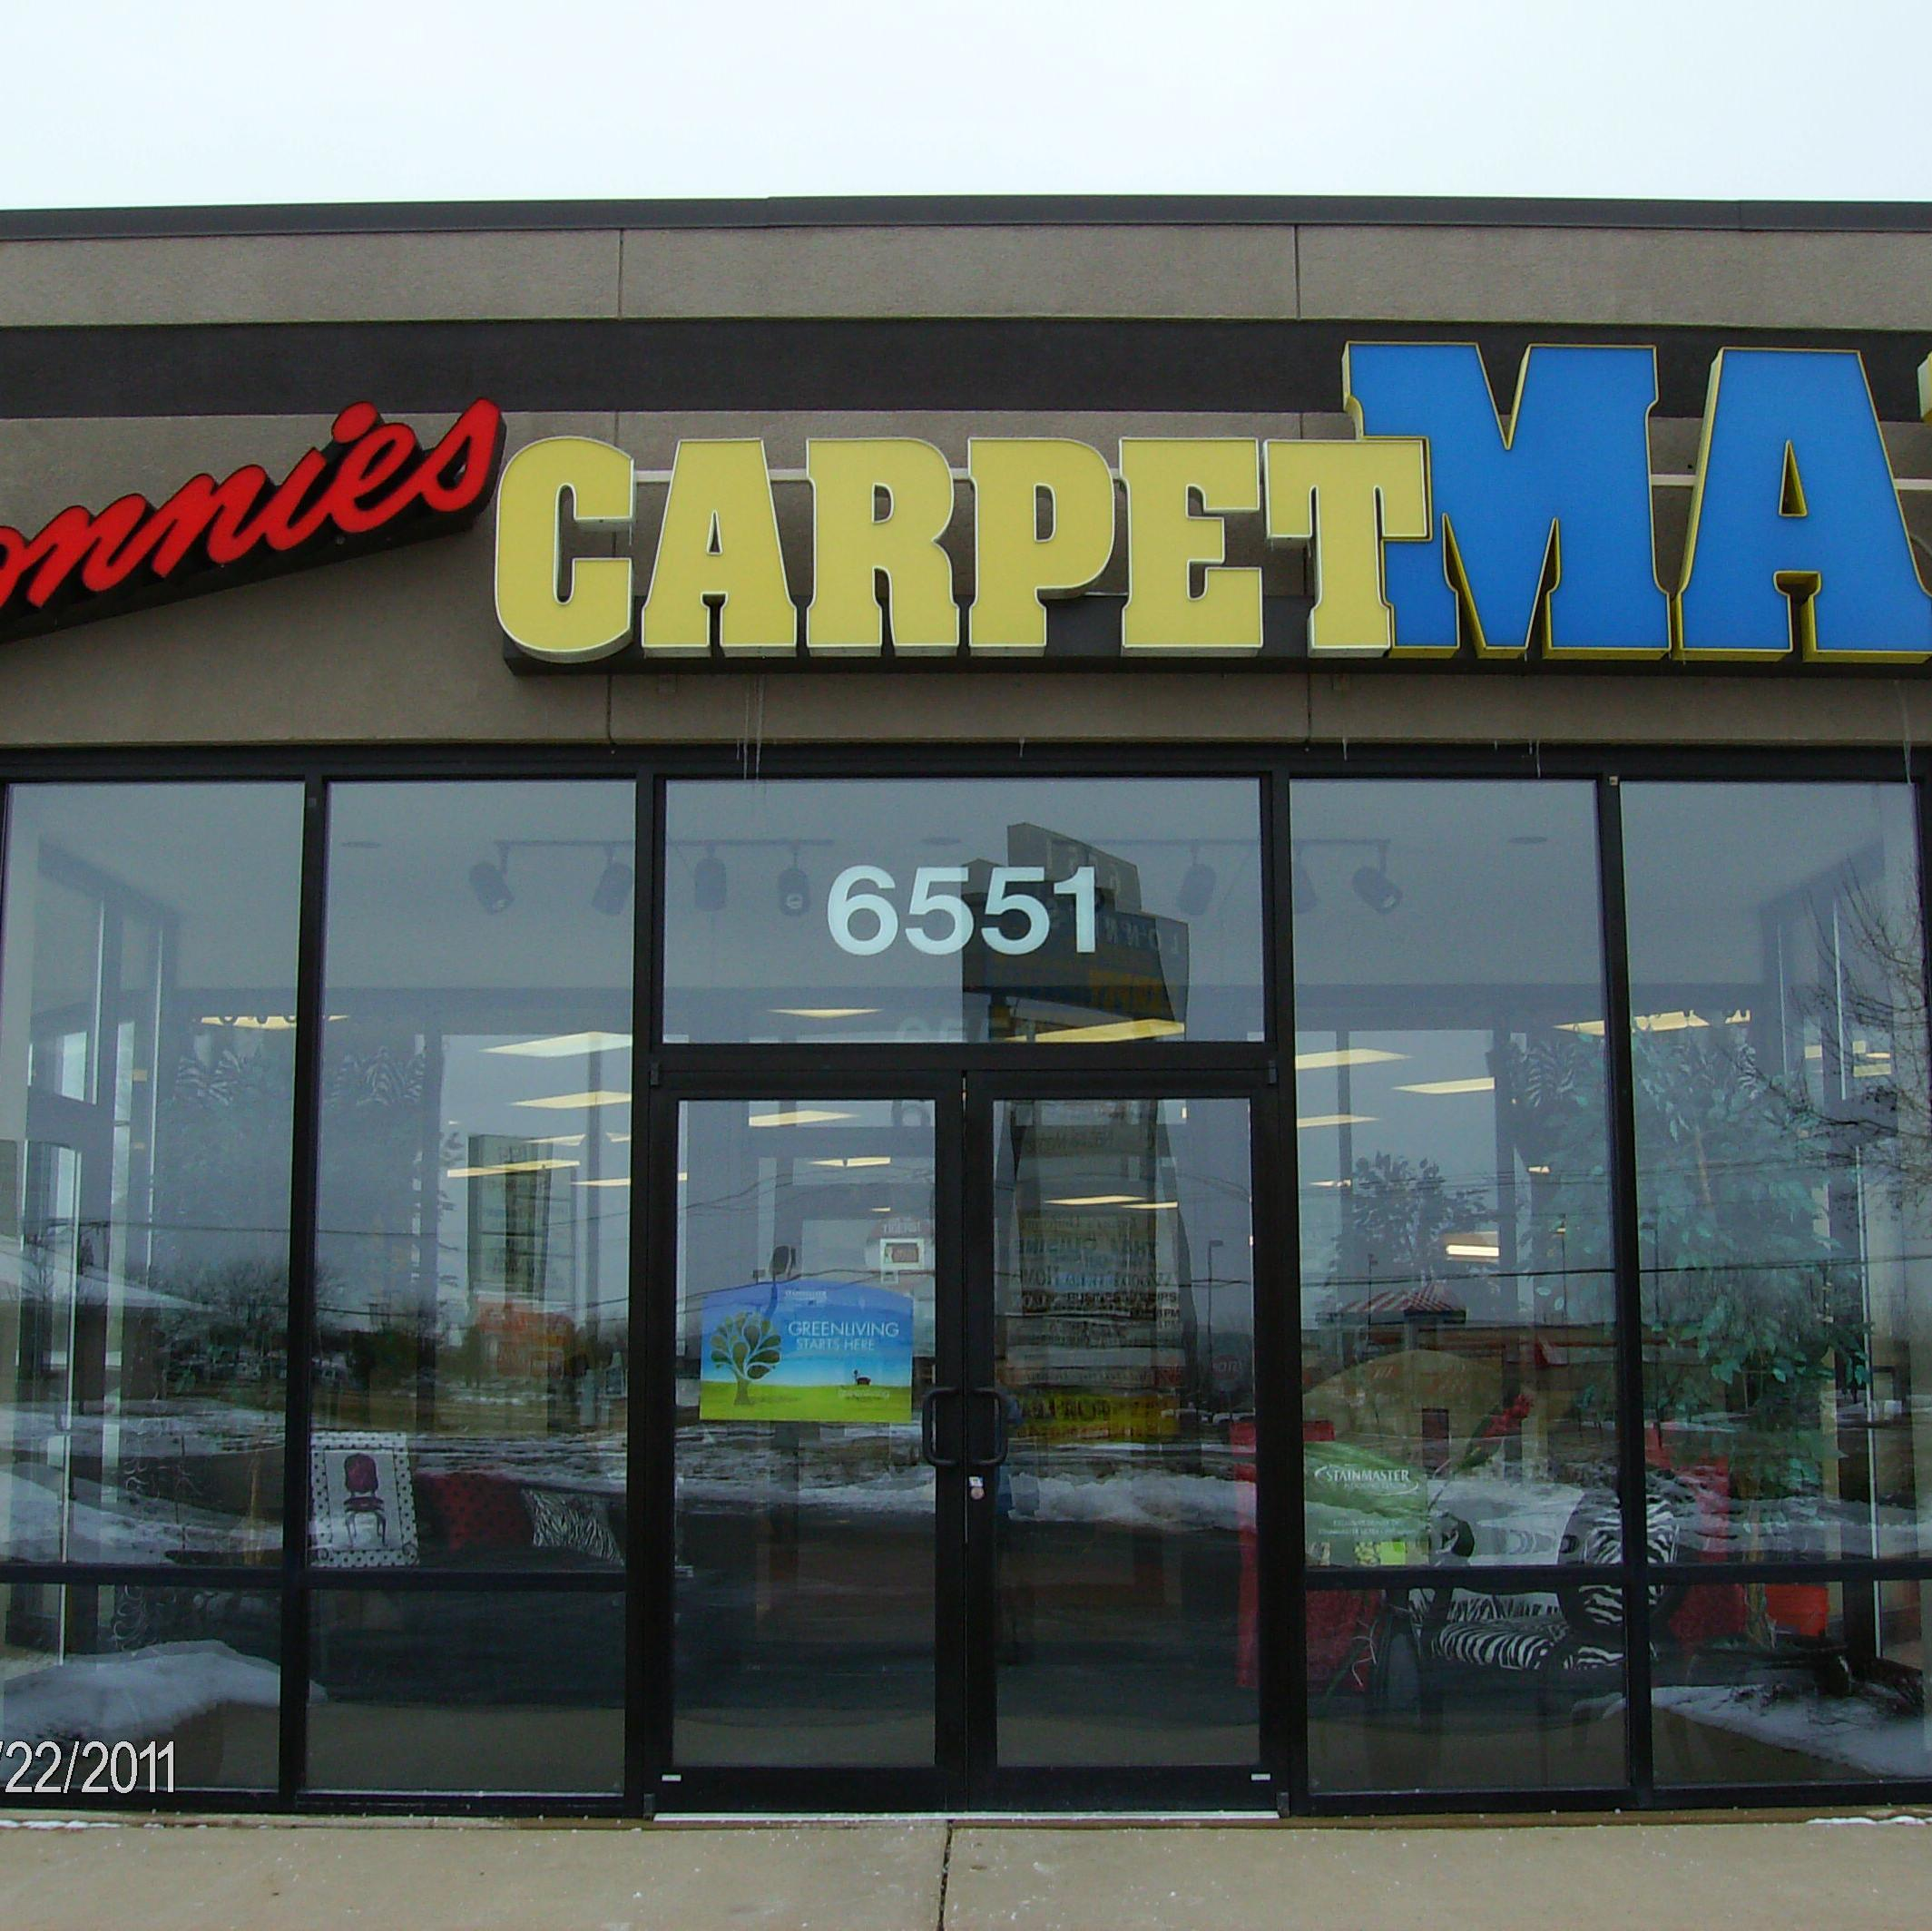 Carpet Maxcarpet Flooring At Lonnie 39 S Max Previous Next Каталог брошура КарпетМакс Carpetmax